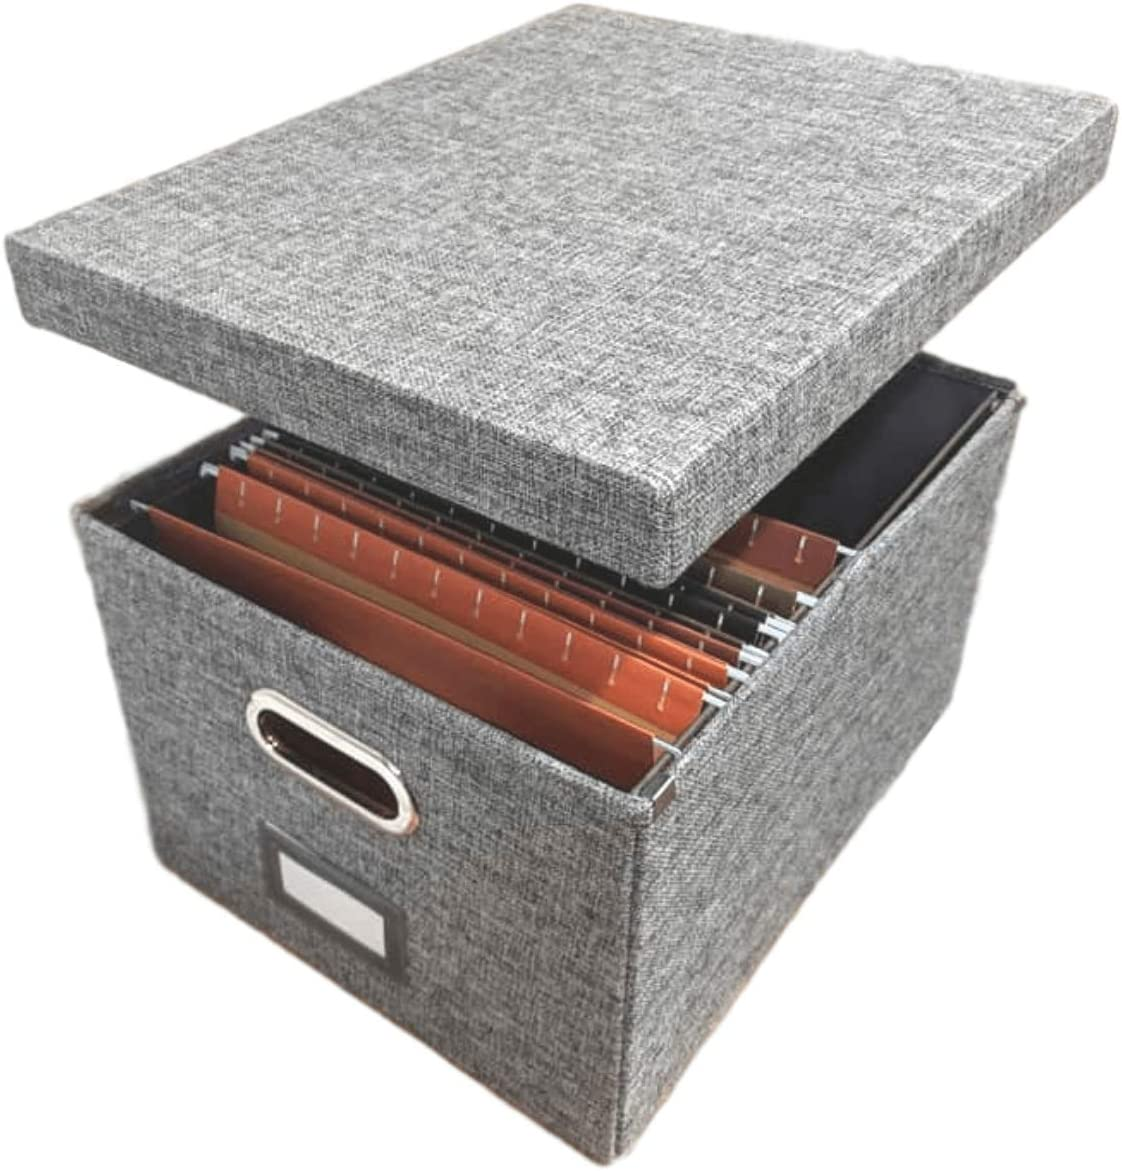 Max 55% OFF Linen File Storage Box Gifts Includes 10 Collaps Legal - Files Hanging